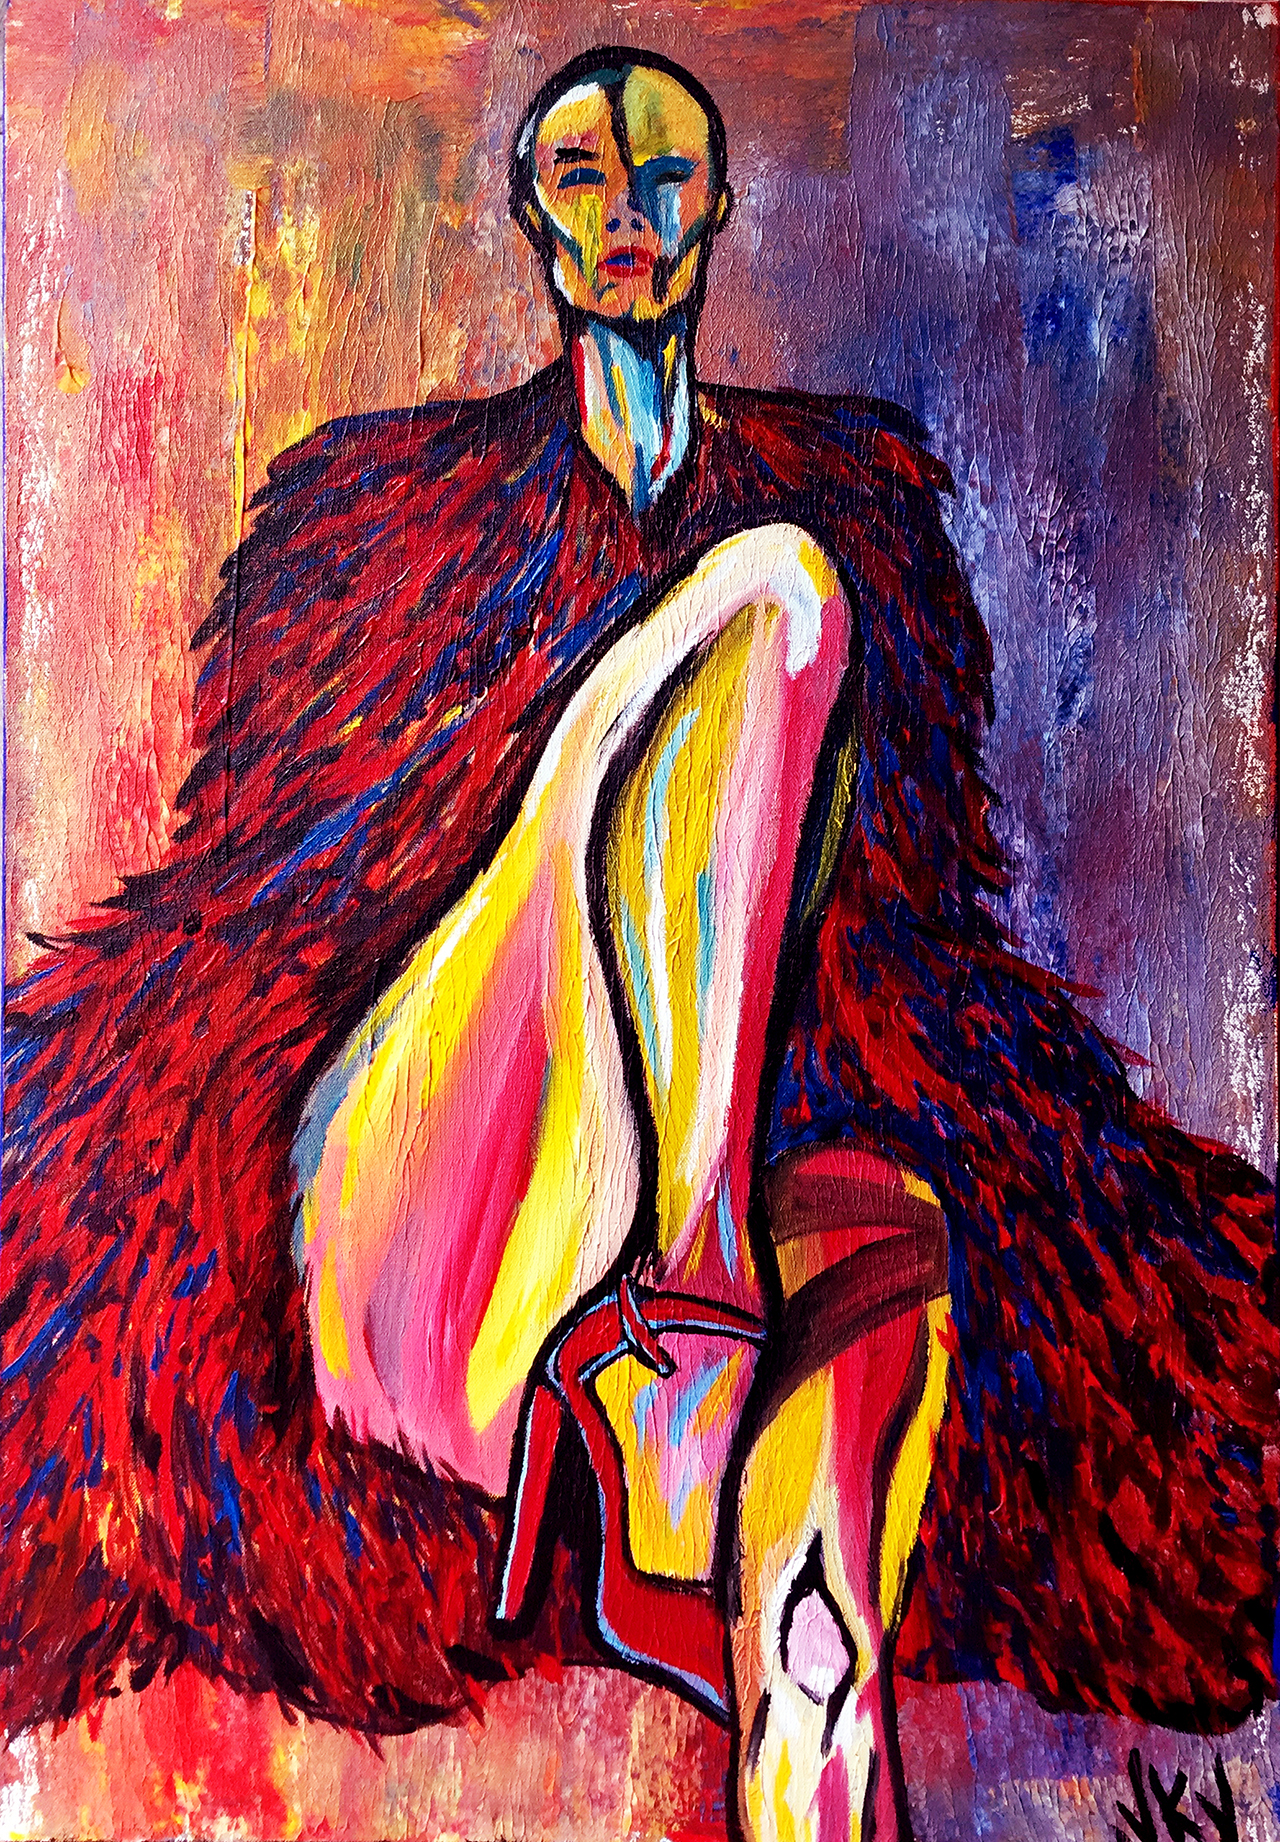 Red Shoe - 30x40 - Acrylic on Canvas